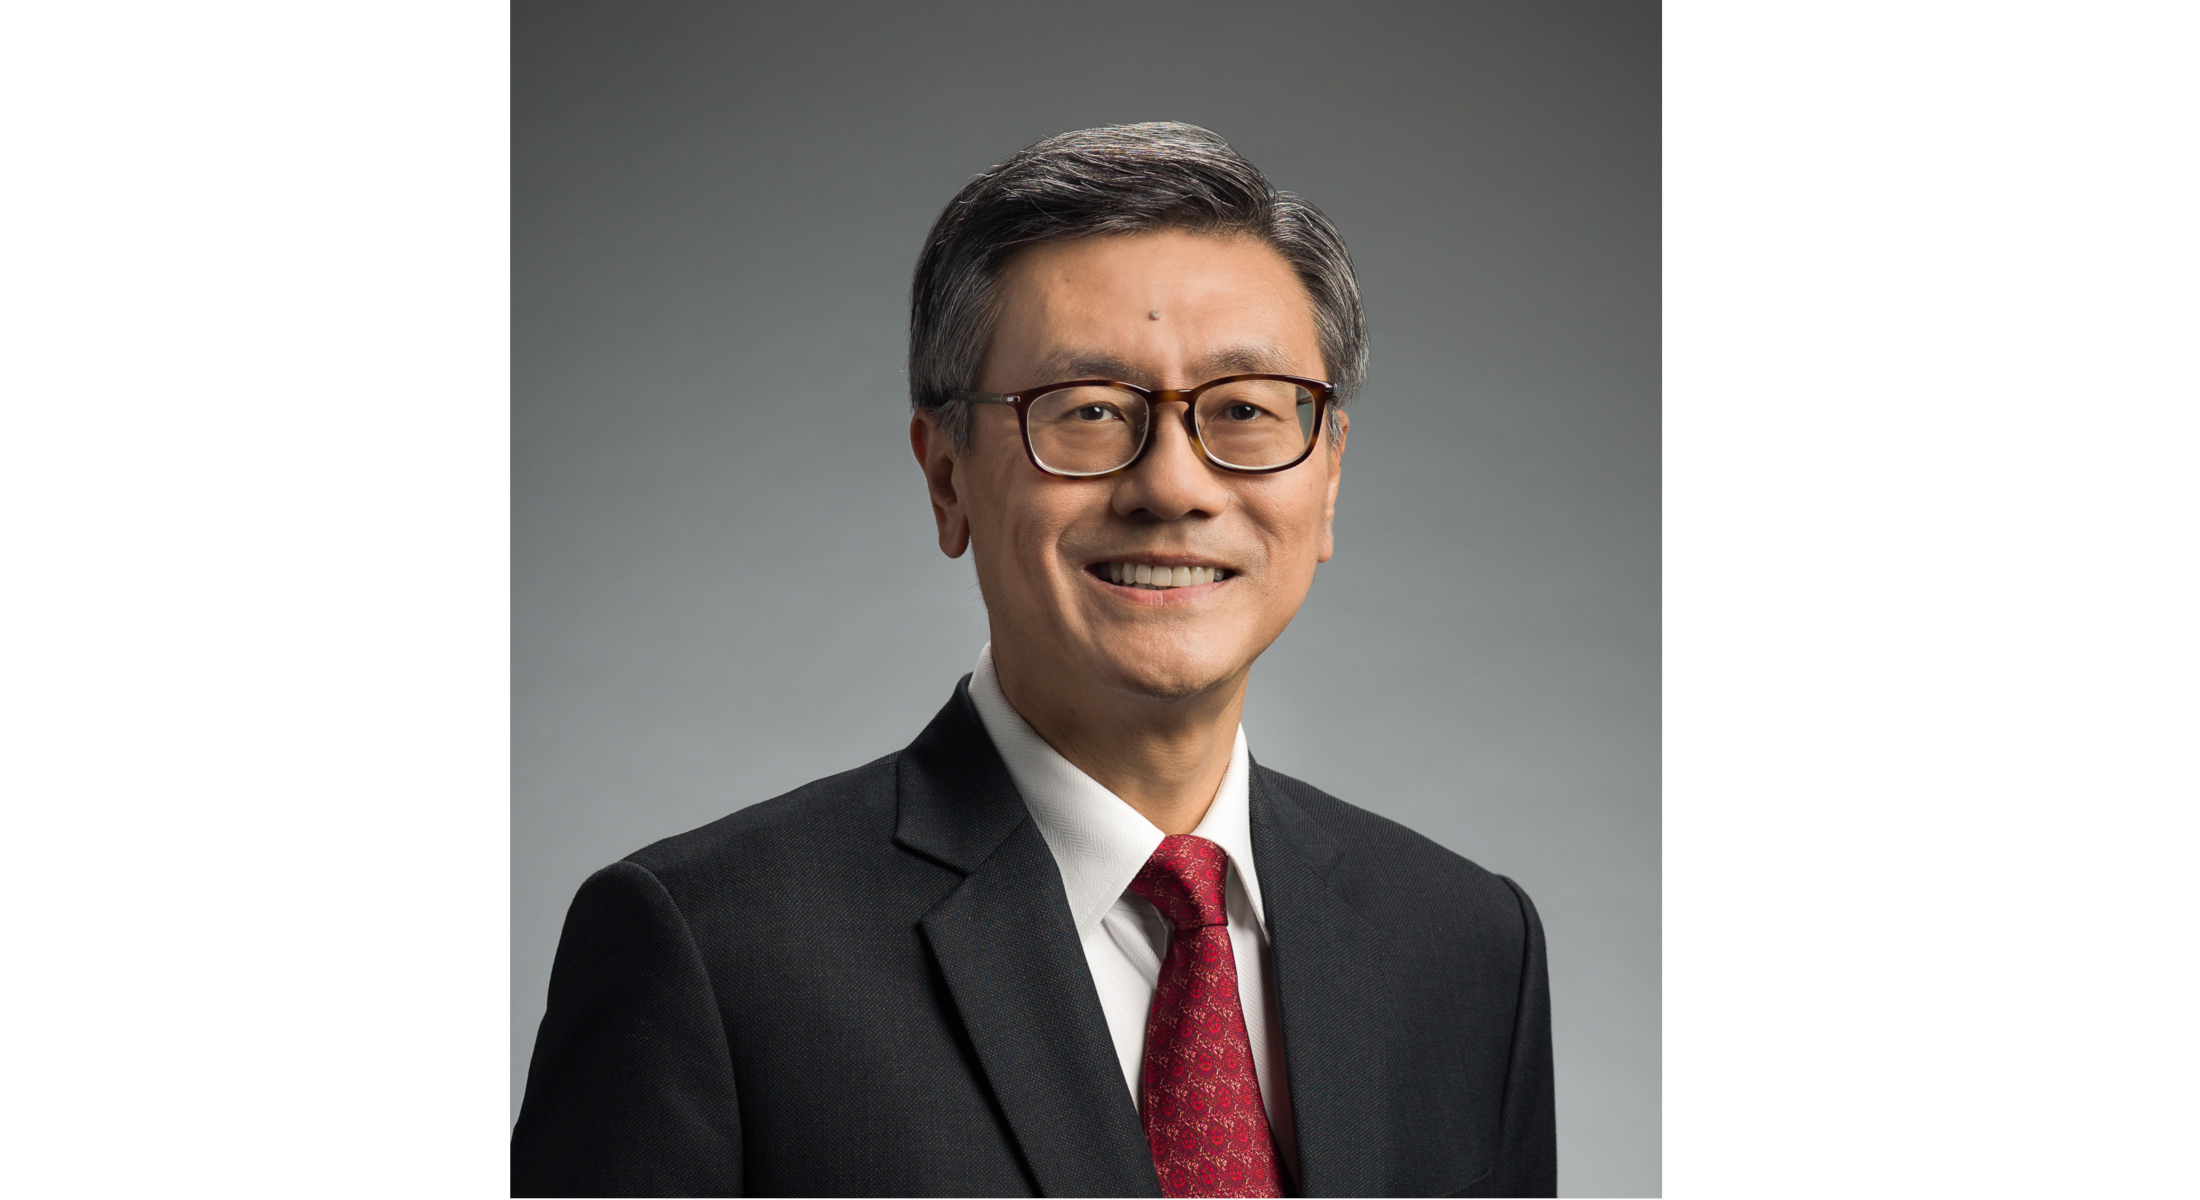 Reflections with Professor Tan Eng Chye